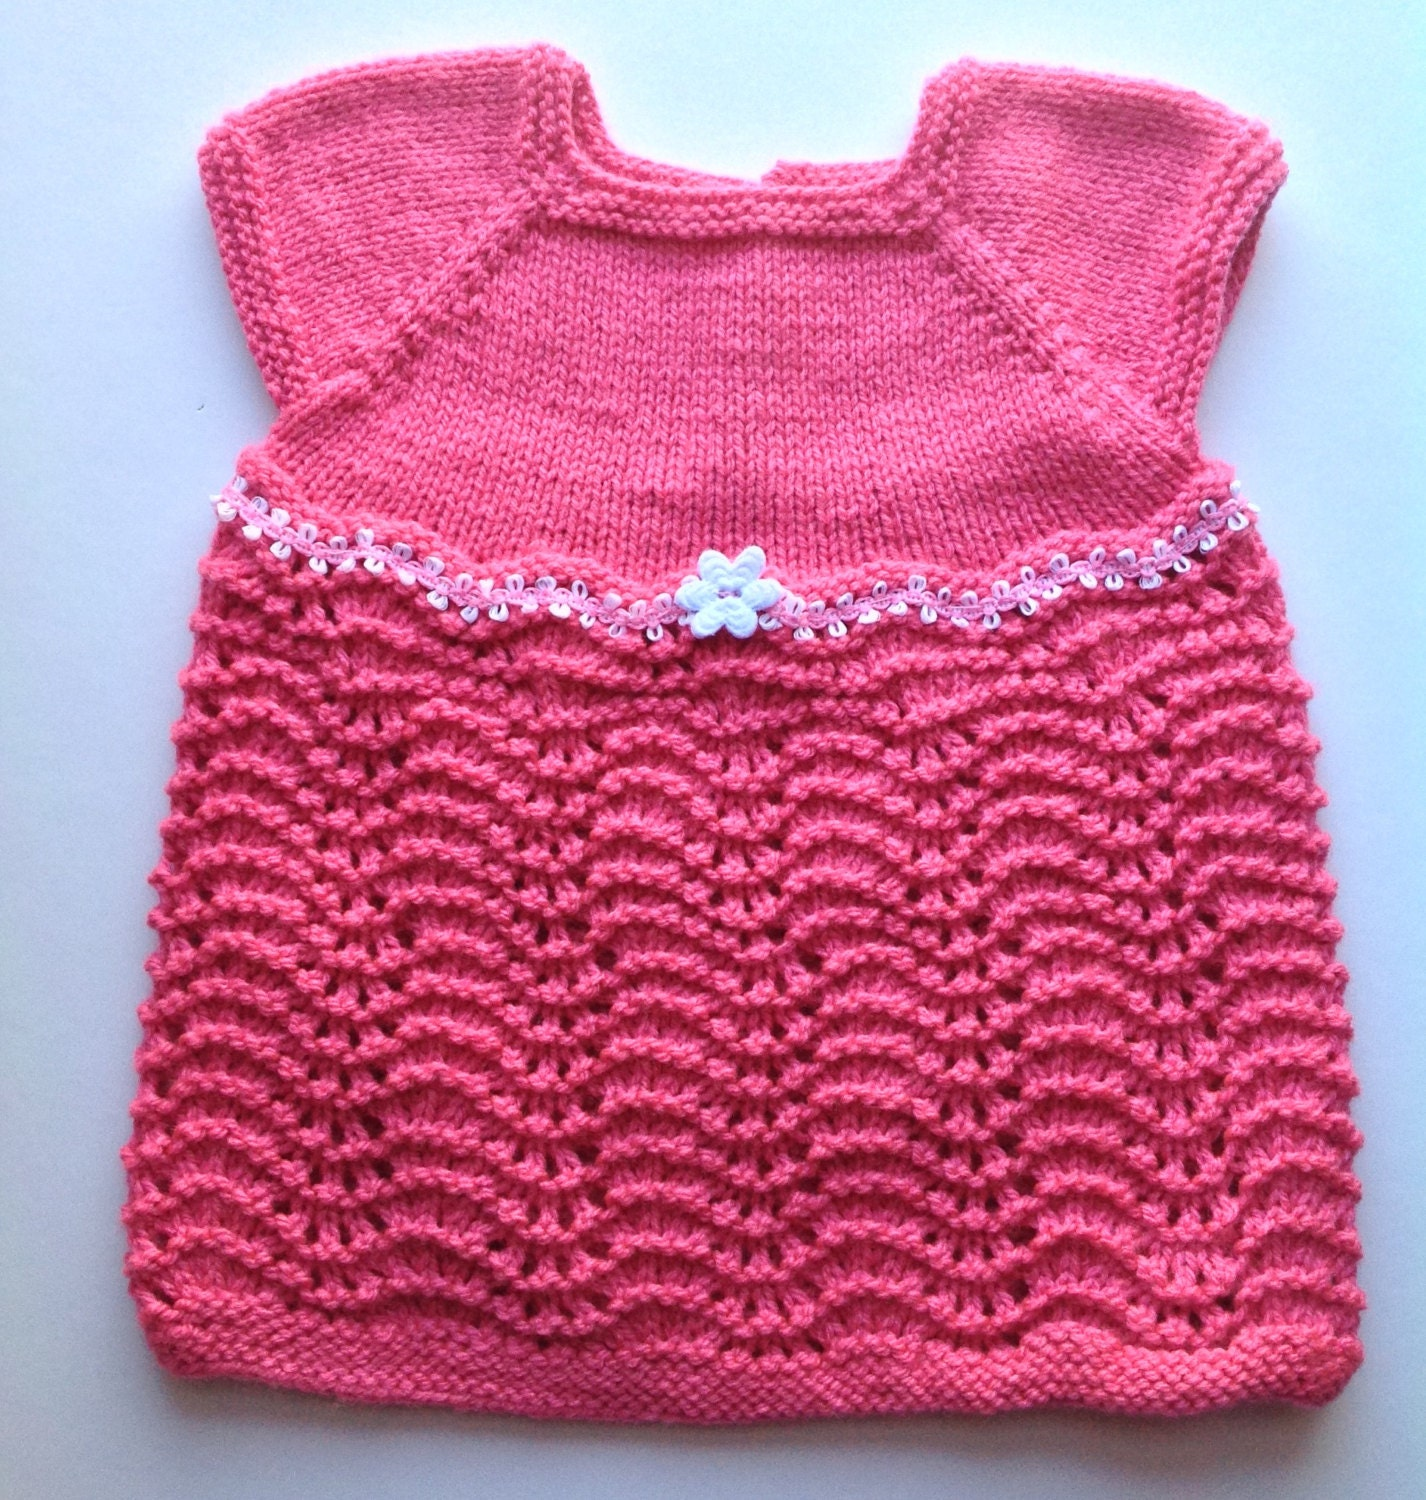 Knitting Summer Dress : Knit baby dress pink knitted lace summer